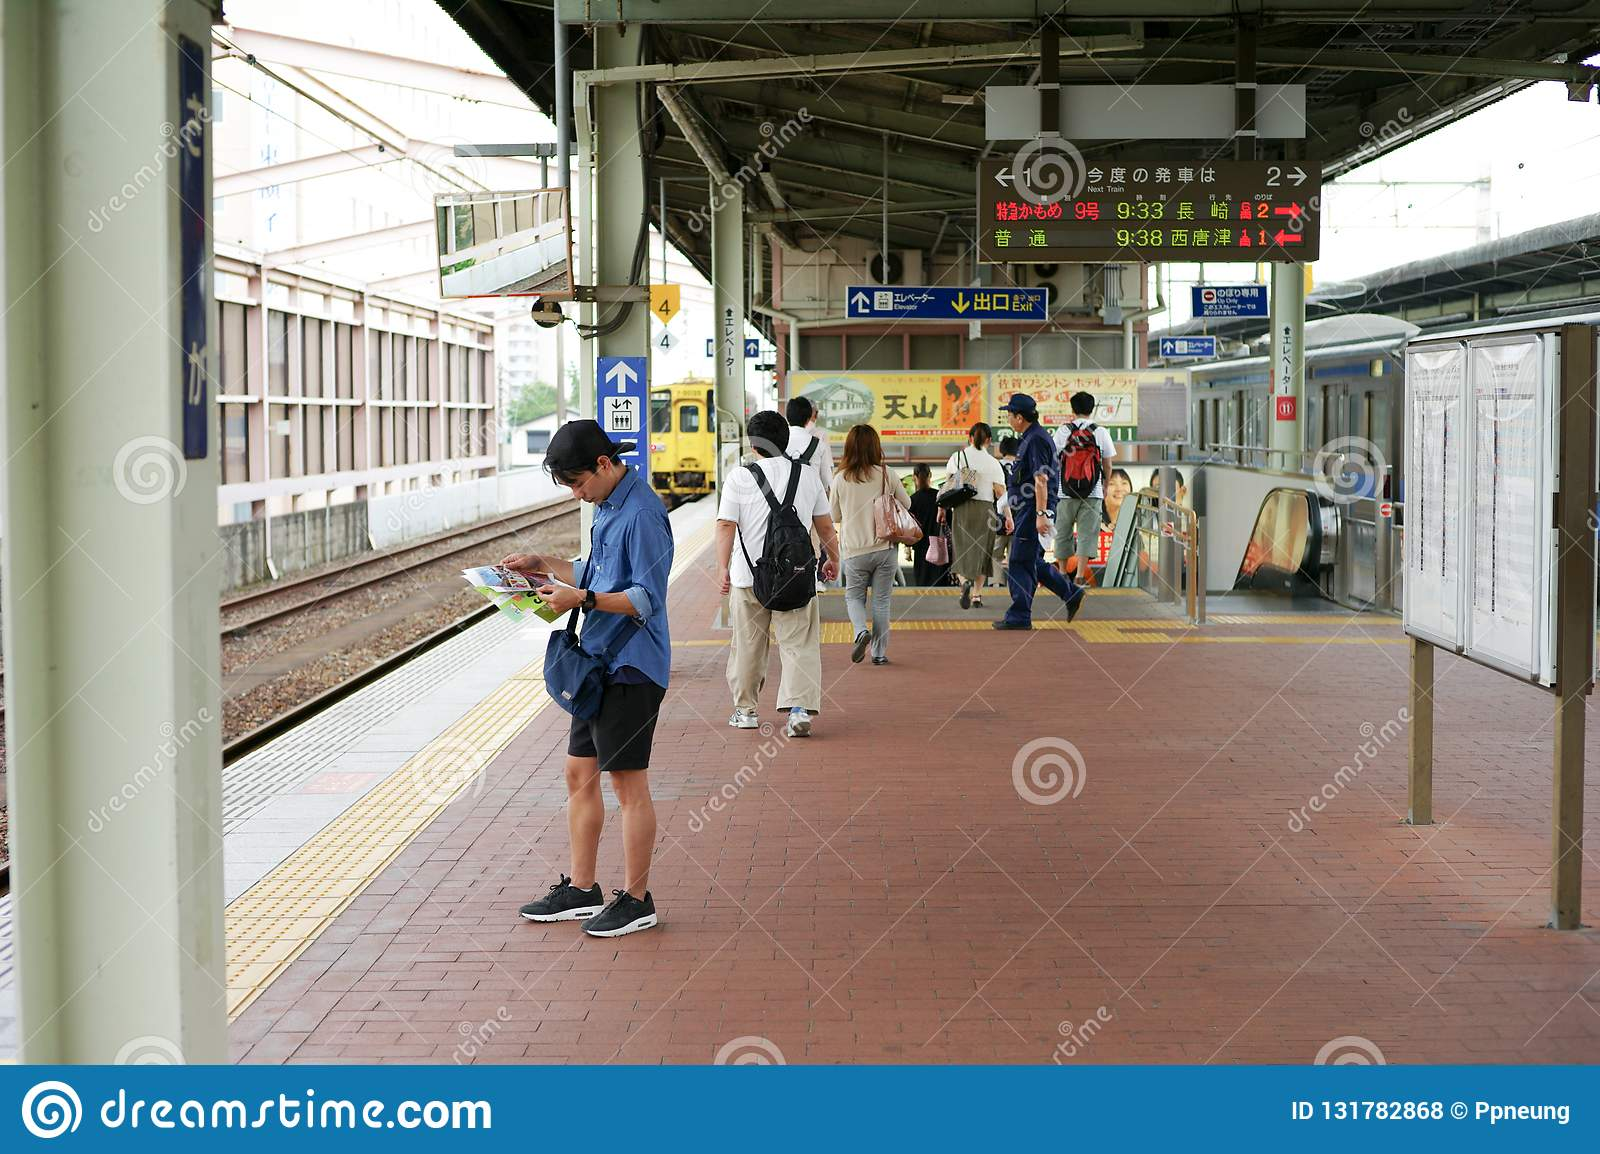 Saga, Japan:September 1, 2016 - Portrait Asian man standing and reading the map at the platform of the train station during